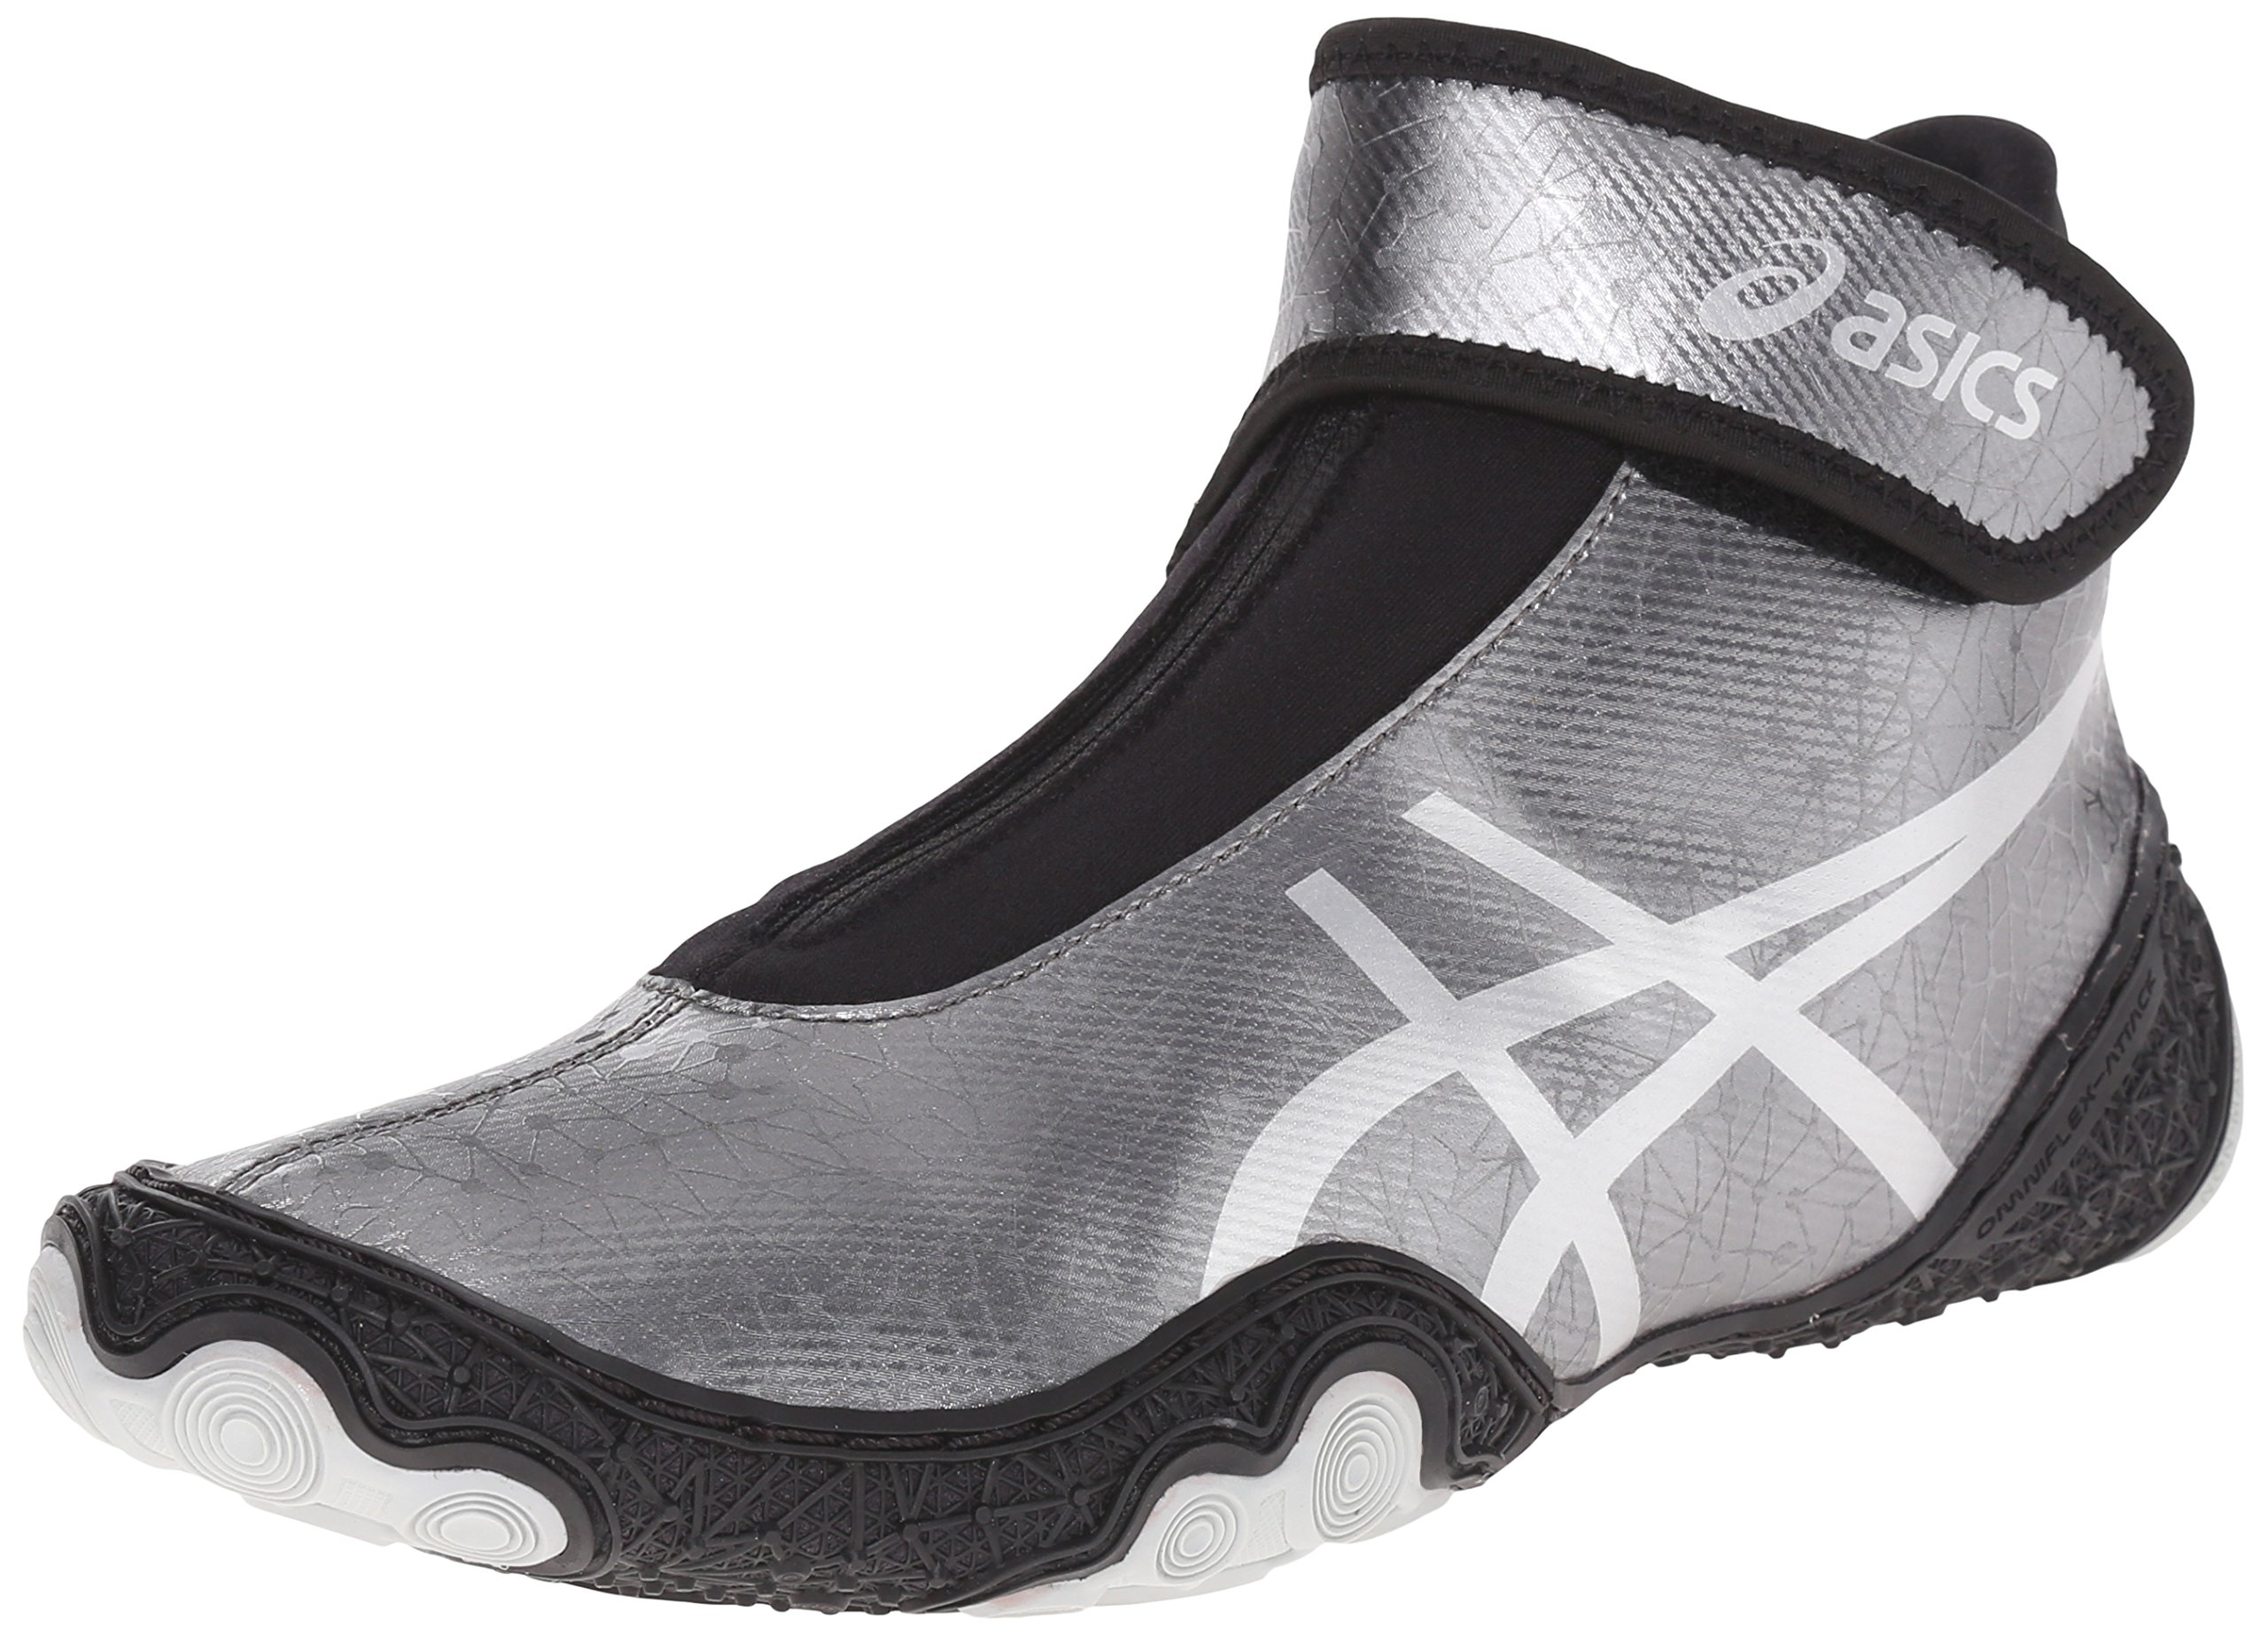 ASICS Men's Omniflex Attack V2.0 Wrestling Shoe, Gunmetal/Silver/Black, 10 M US